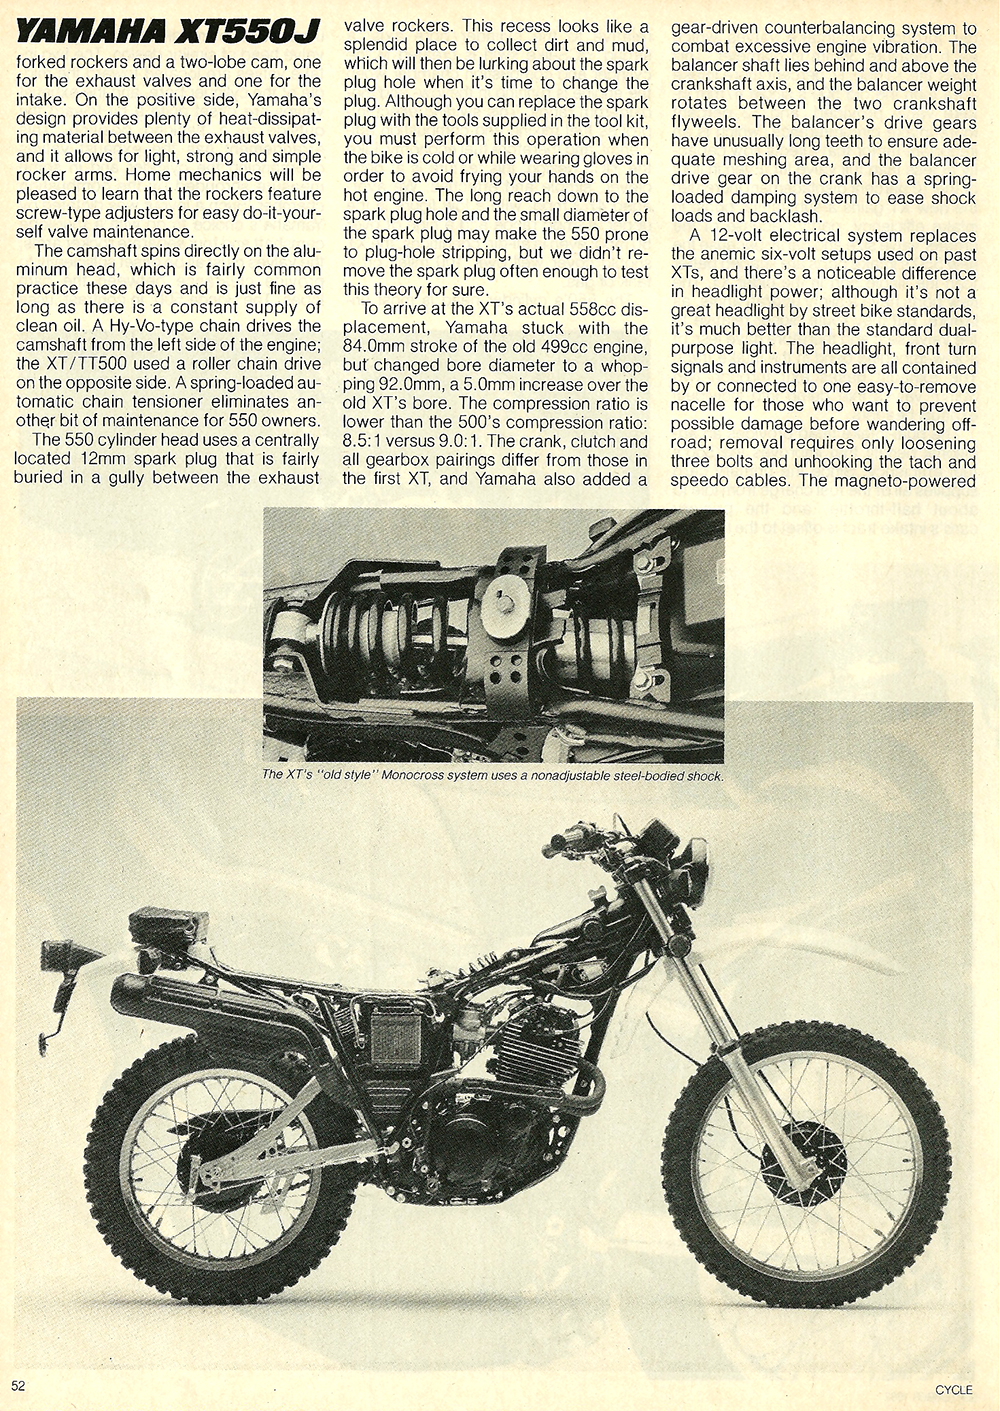 1982 Yamaha XT550J off road test 4.jpg